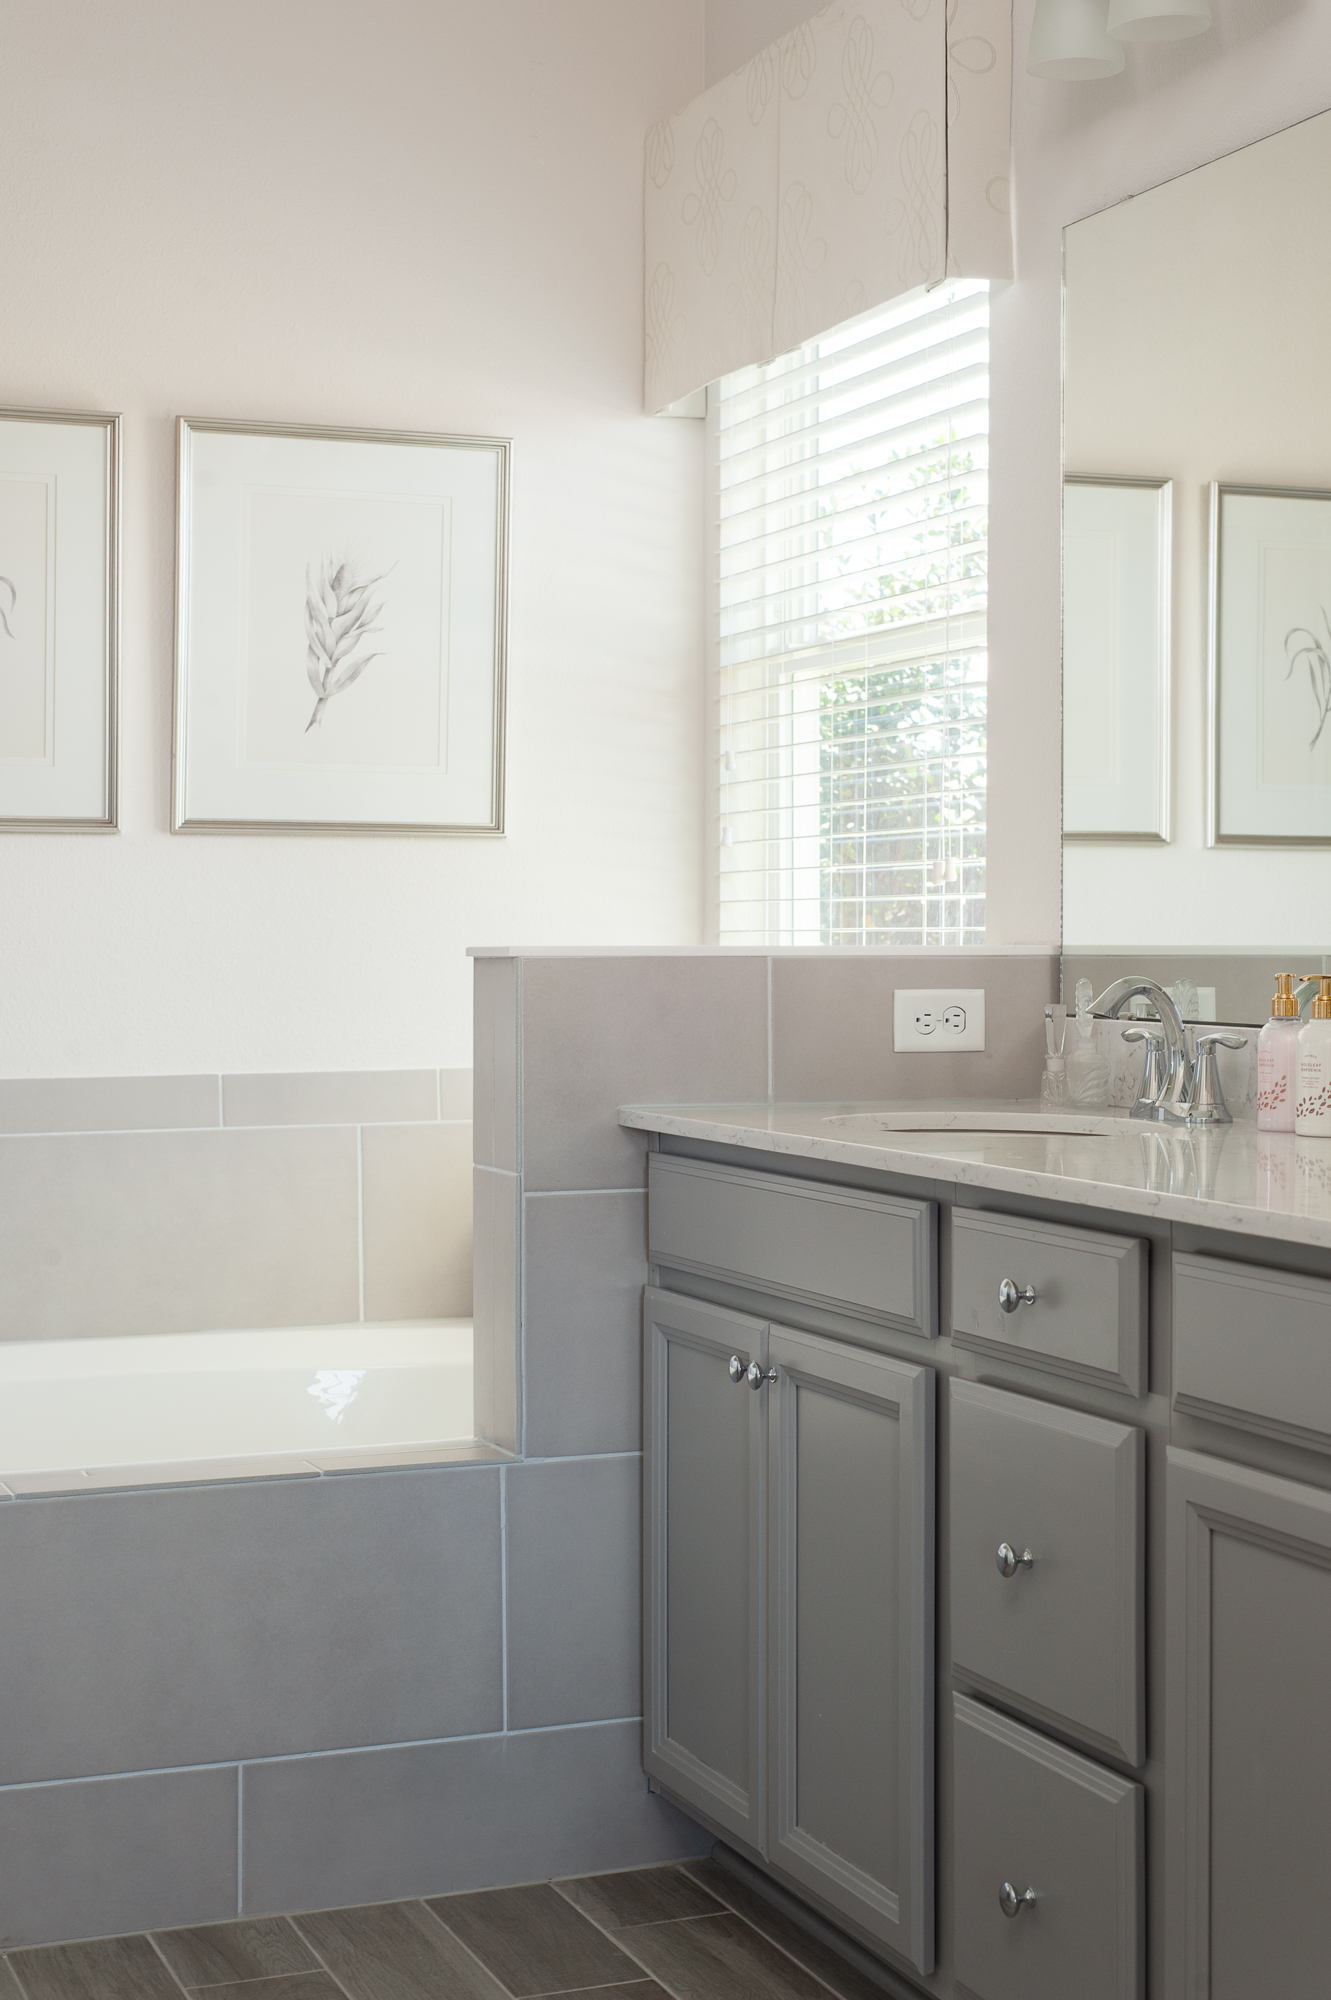 Micamy_Interior Designer_Design_Interior_Model_Merchandising_Owners_Suite_Universal_Furniture_Traditional_Transitional_Bathroom_Vanity_Grey_Cabinets.jpg